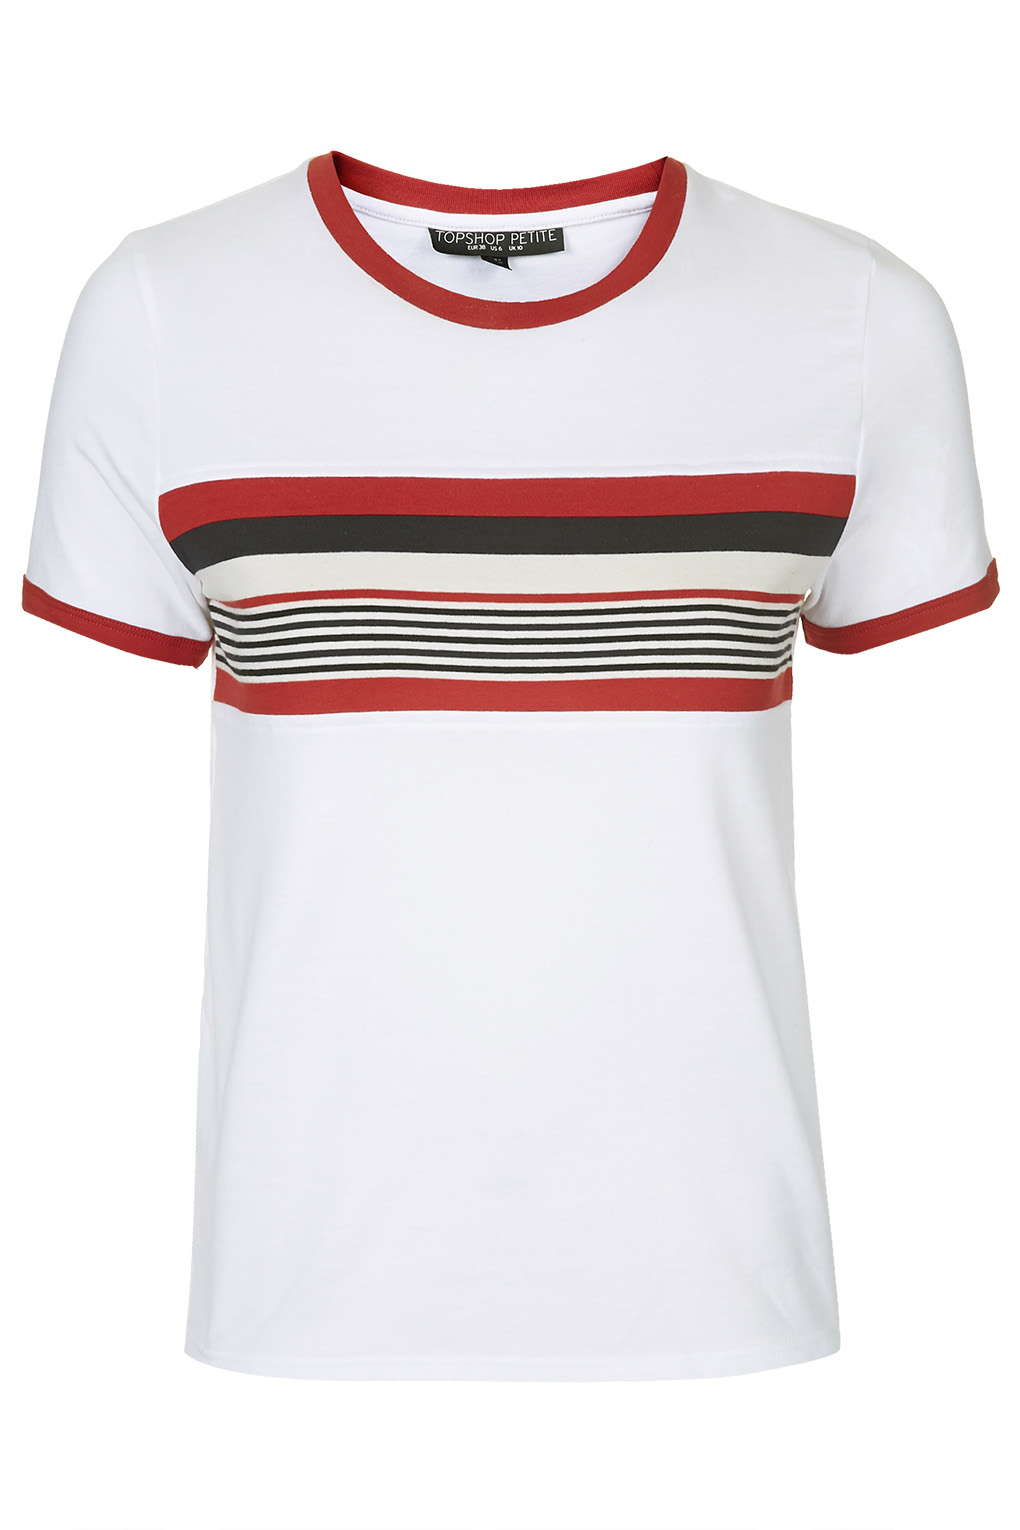 PETITE Stripe Insert Tee View All Tops Clothing